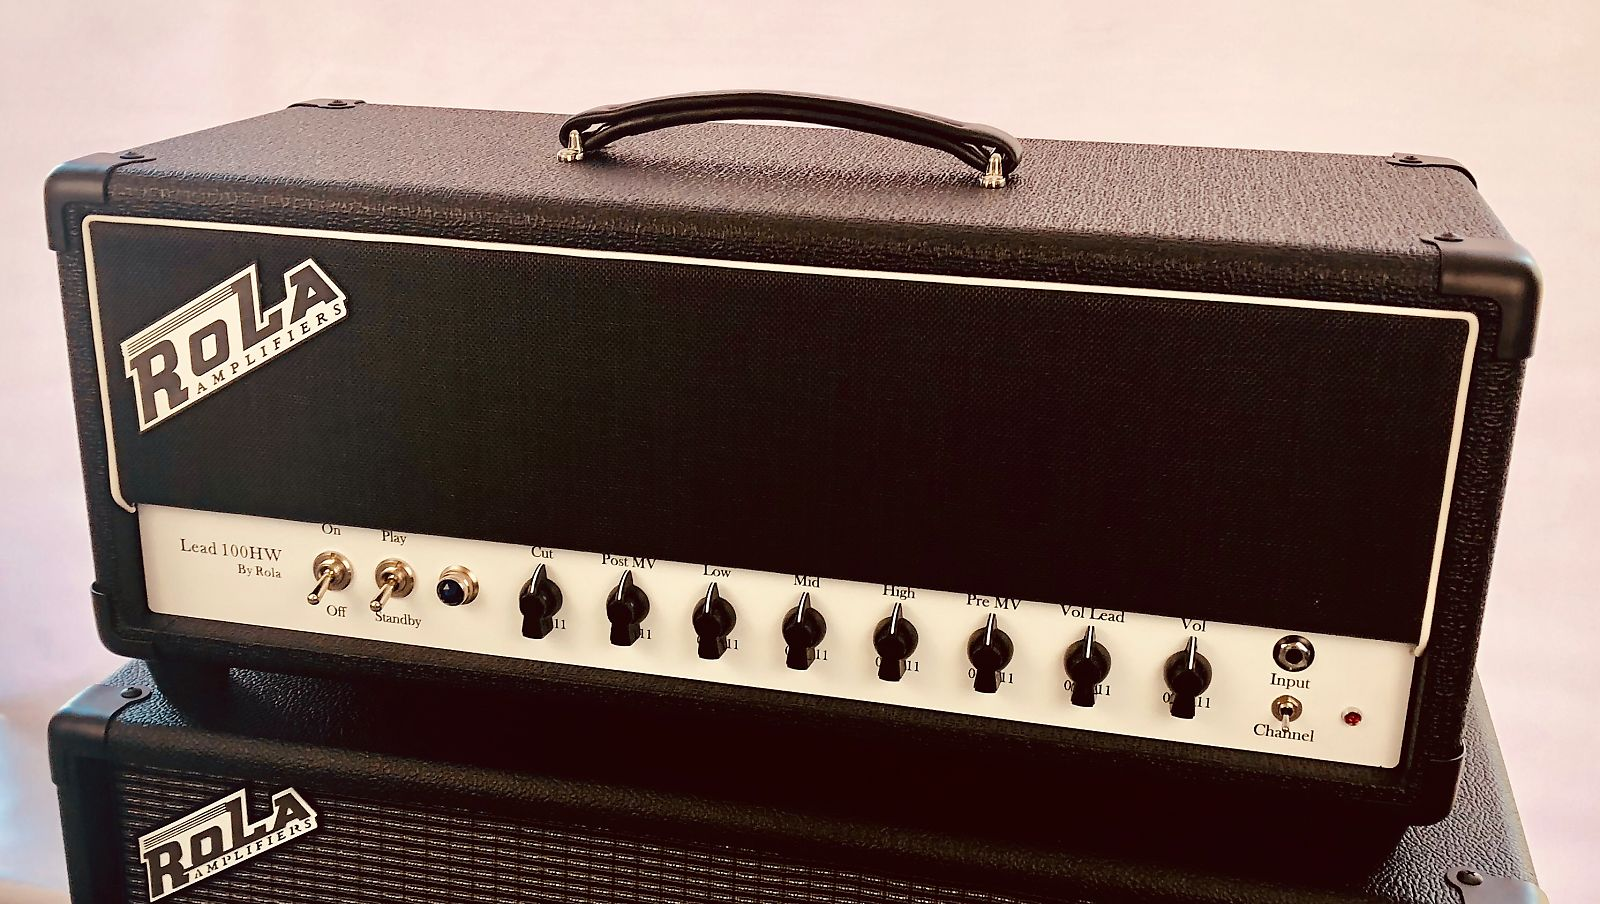 Rola Amplifiers, Lead 100HW, 2ch, Hand wired in the USA